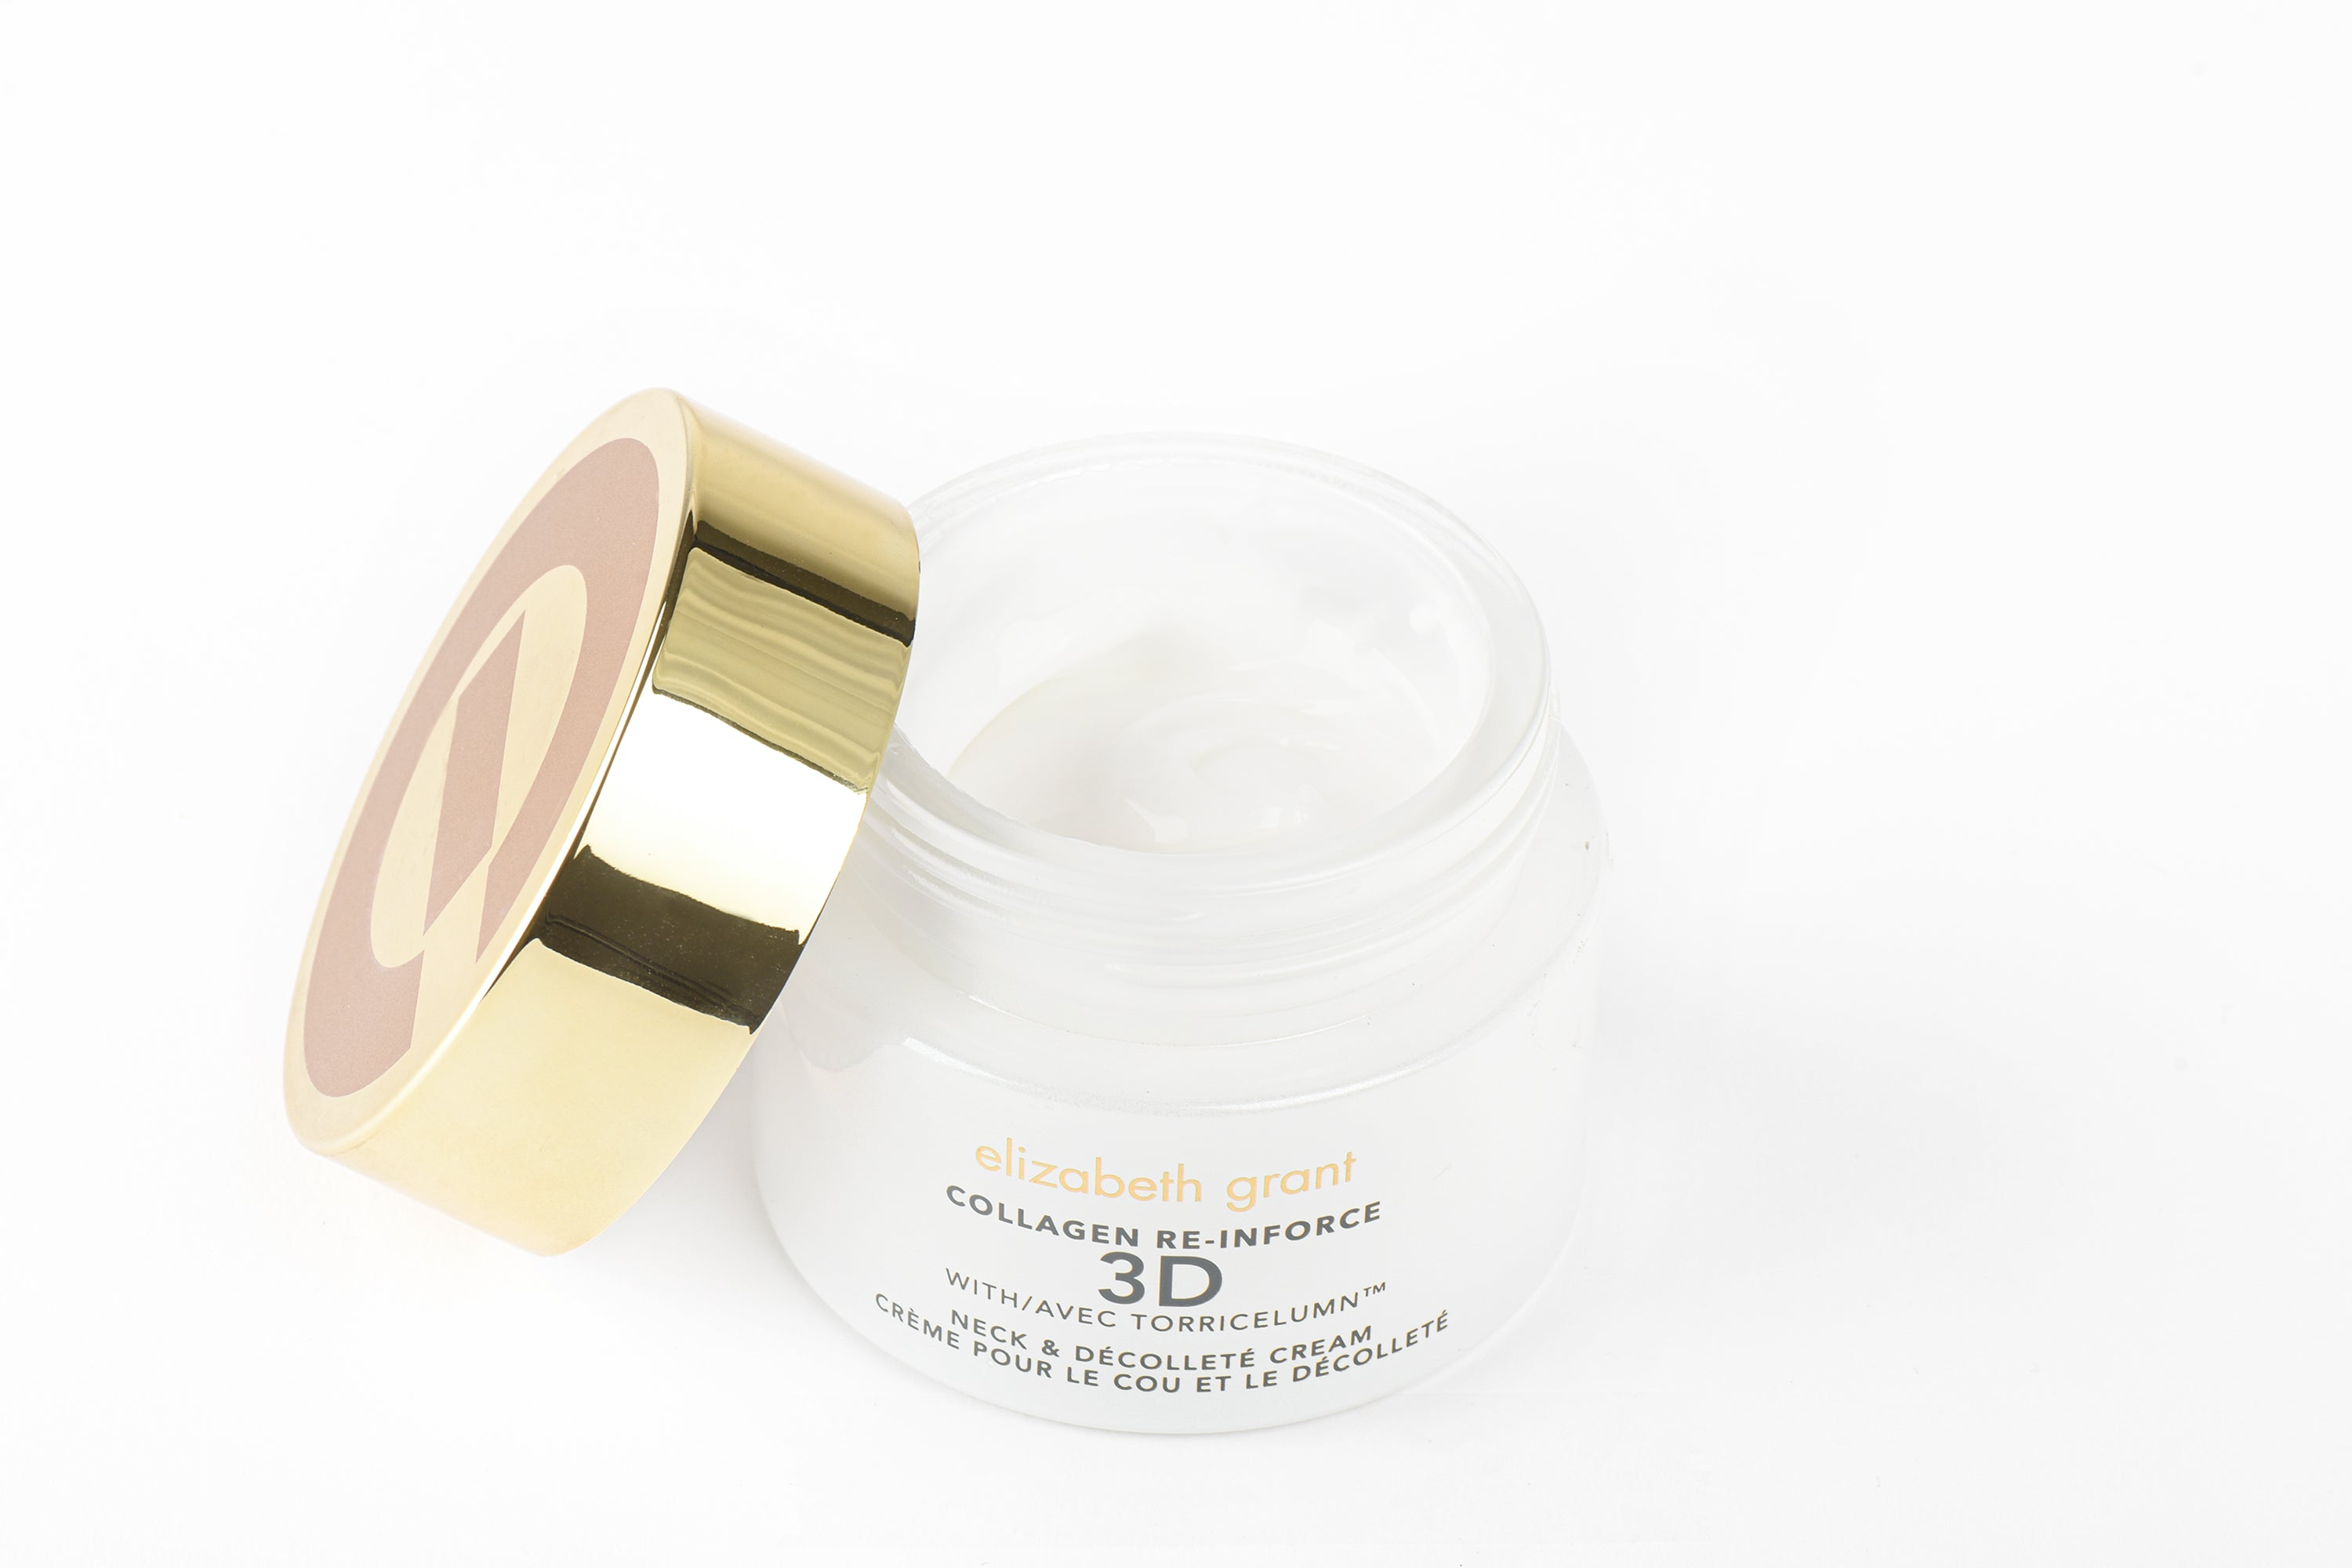 Collagen Re-Inforce 3D Neck & Décolleté Cream